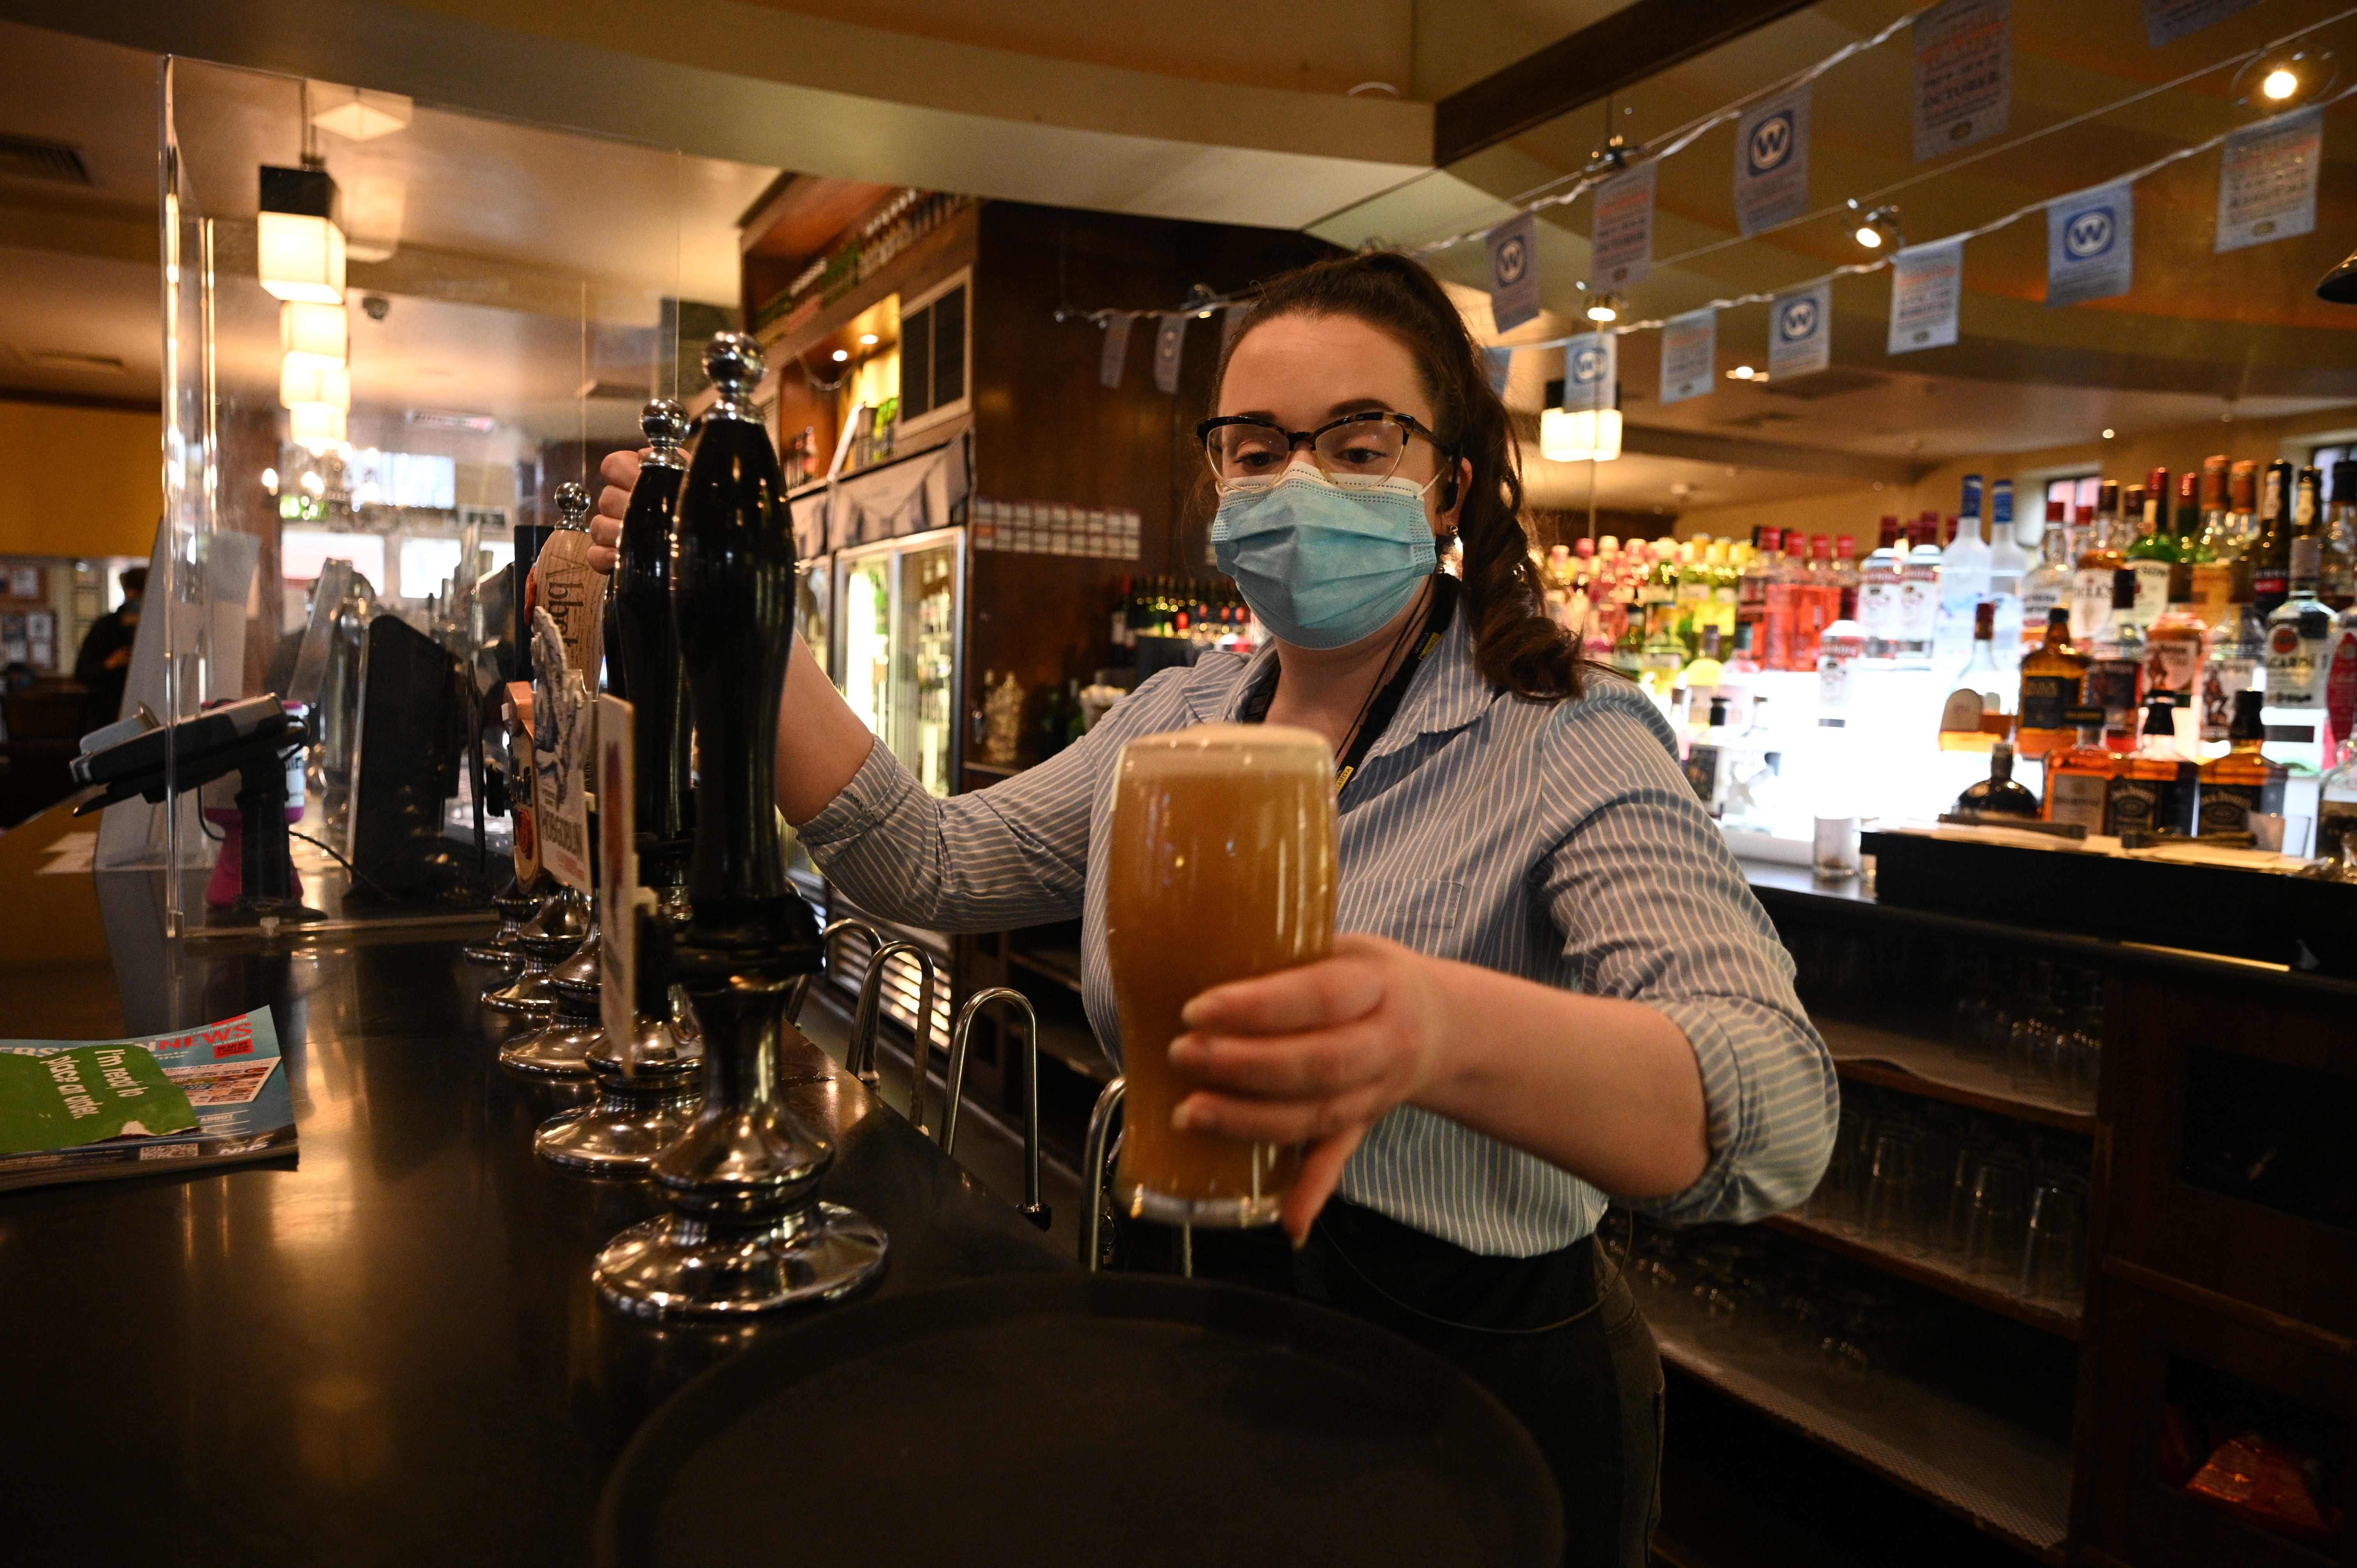 A member of the bar staff pulls a pint in a Wetherspoons pub in Leigh, Greater Manchester